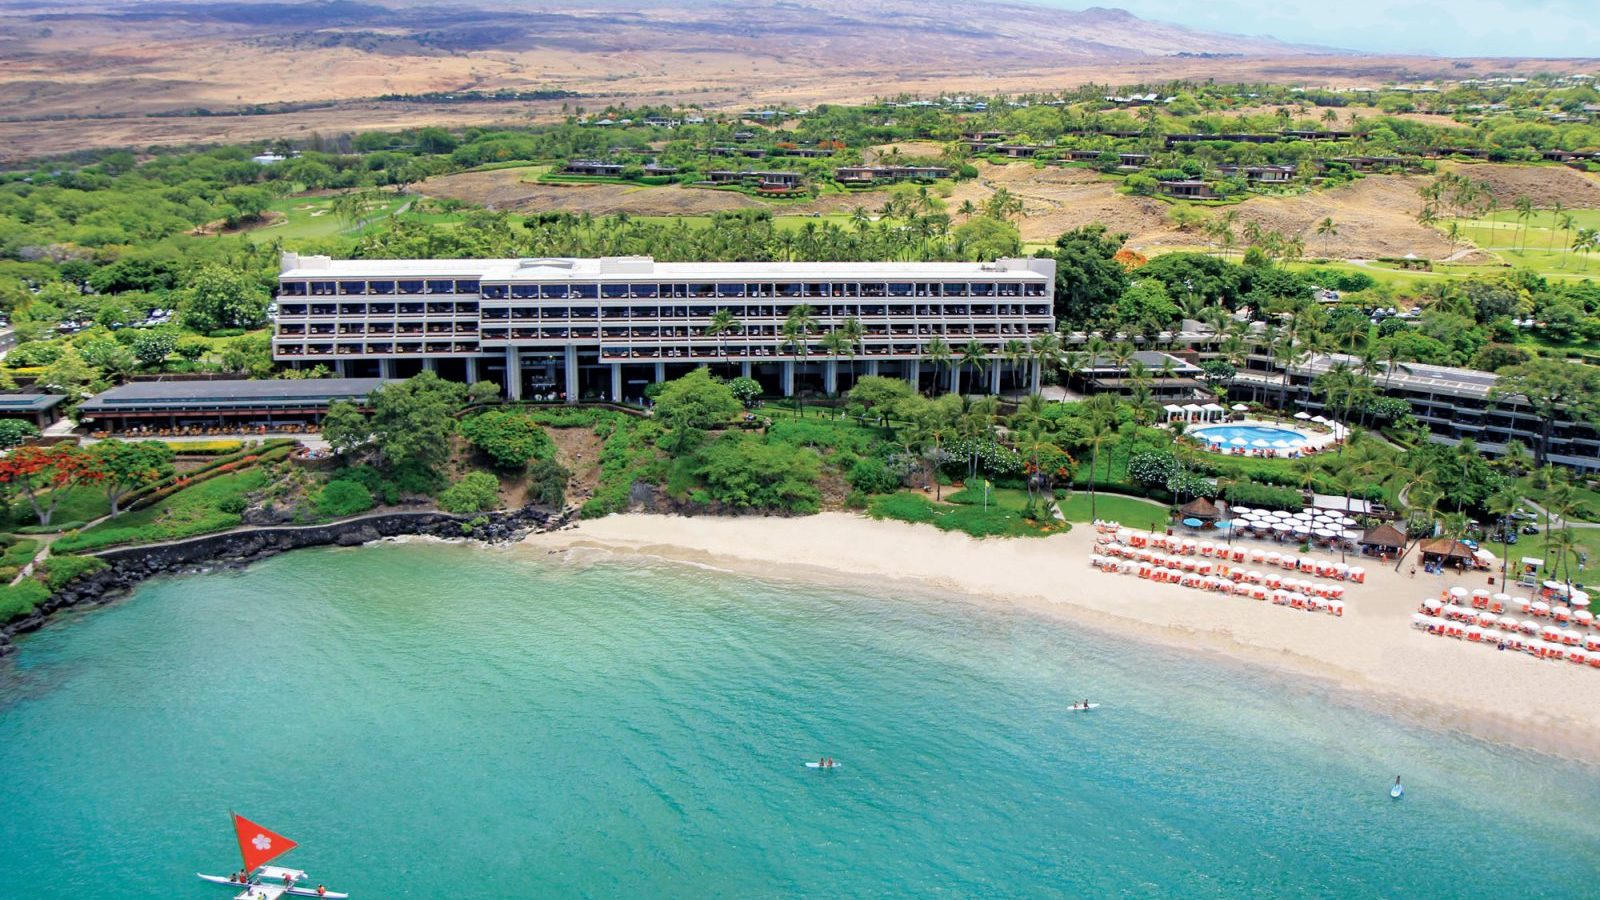 Mauna kea golf resort vacation packages sophisticated for Hotel design kea